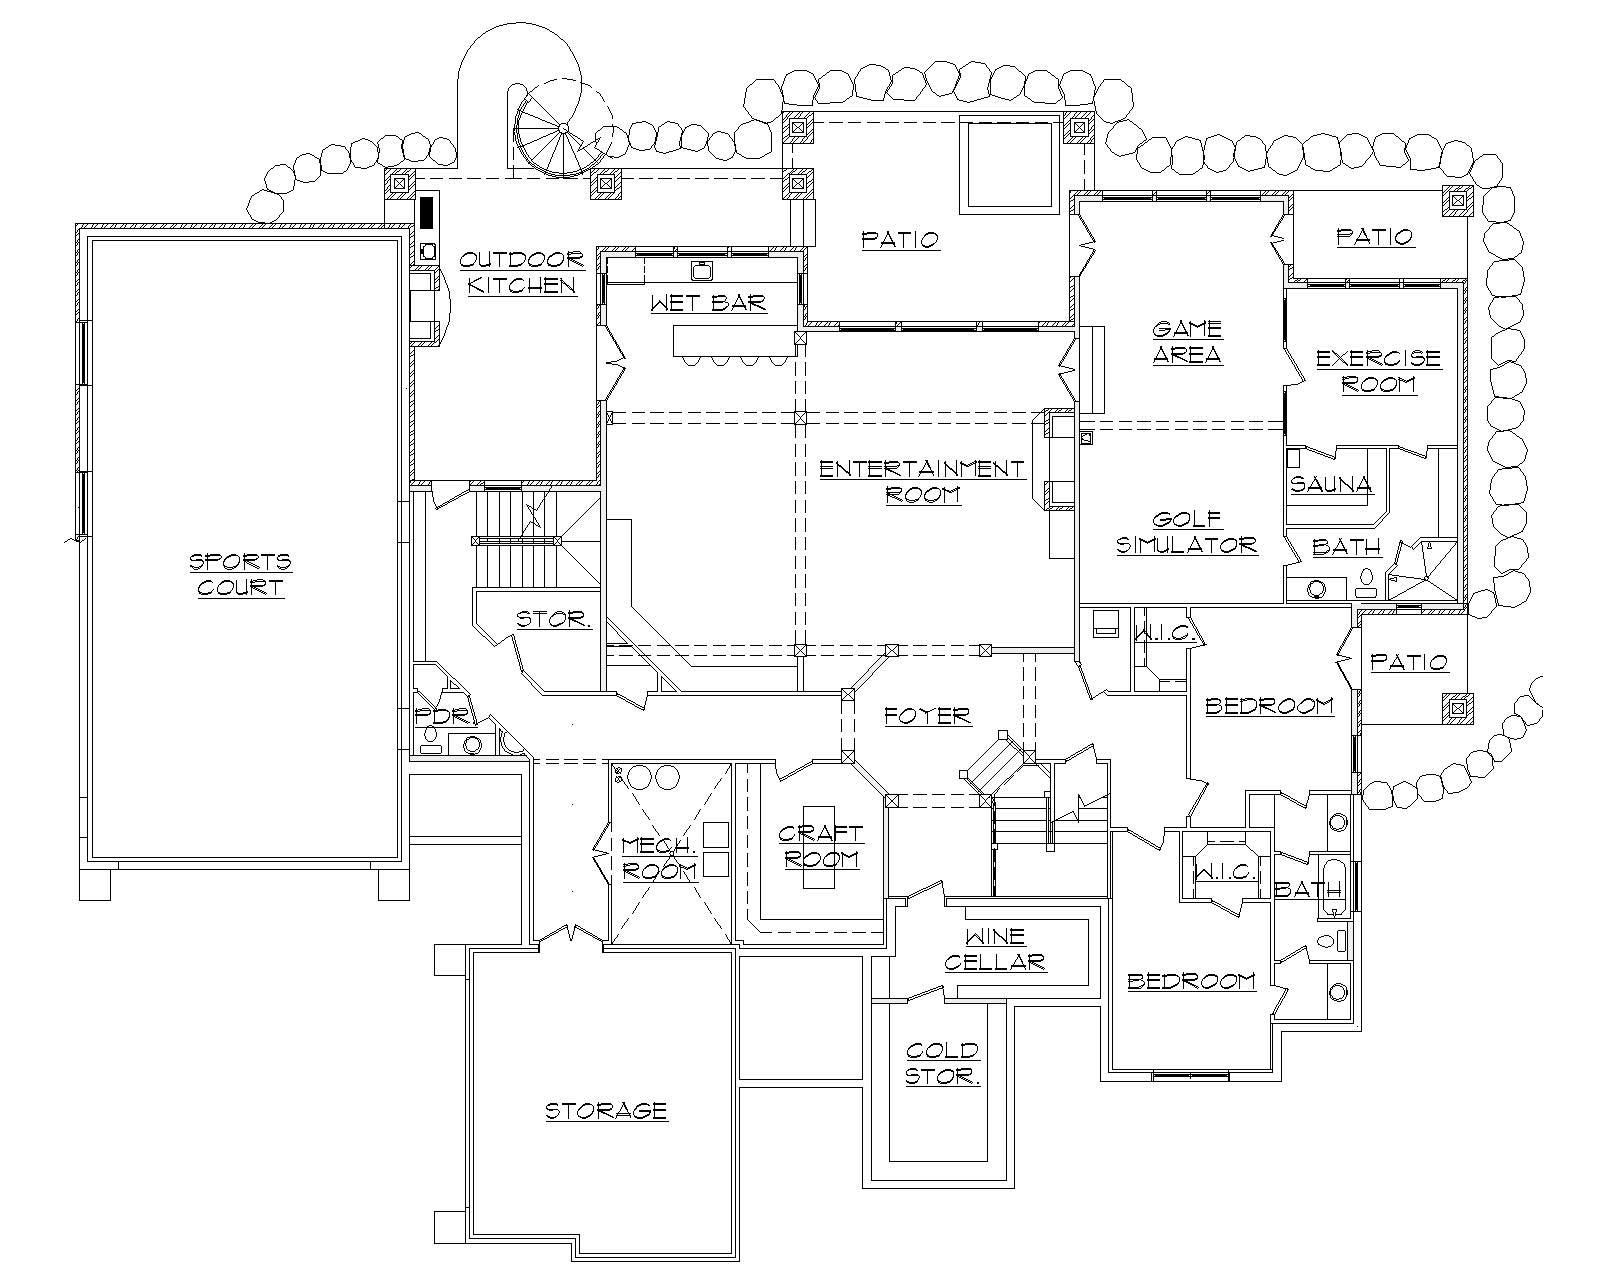 House plans with indoor basketball court how to costs Cost to build basketball court